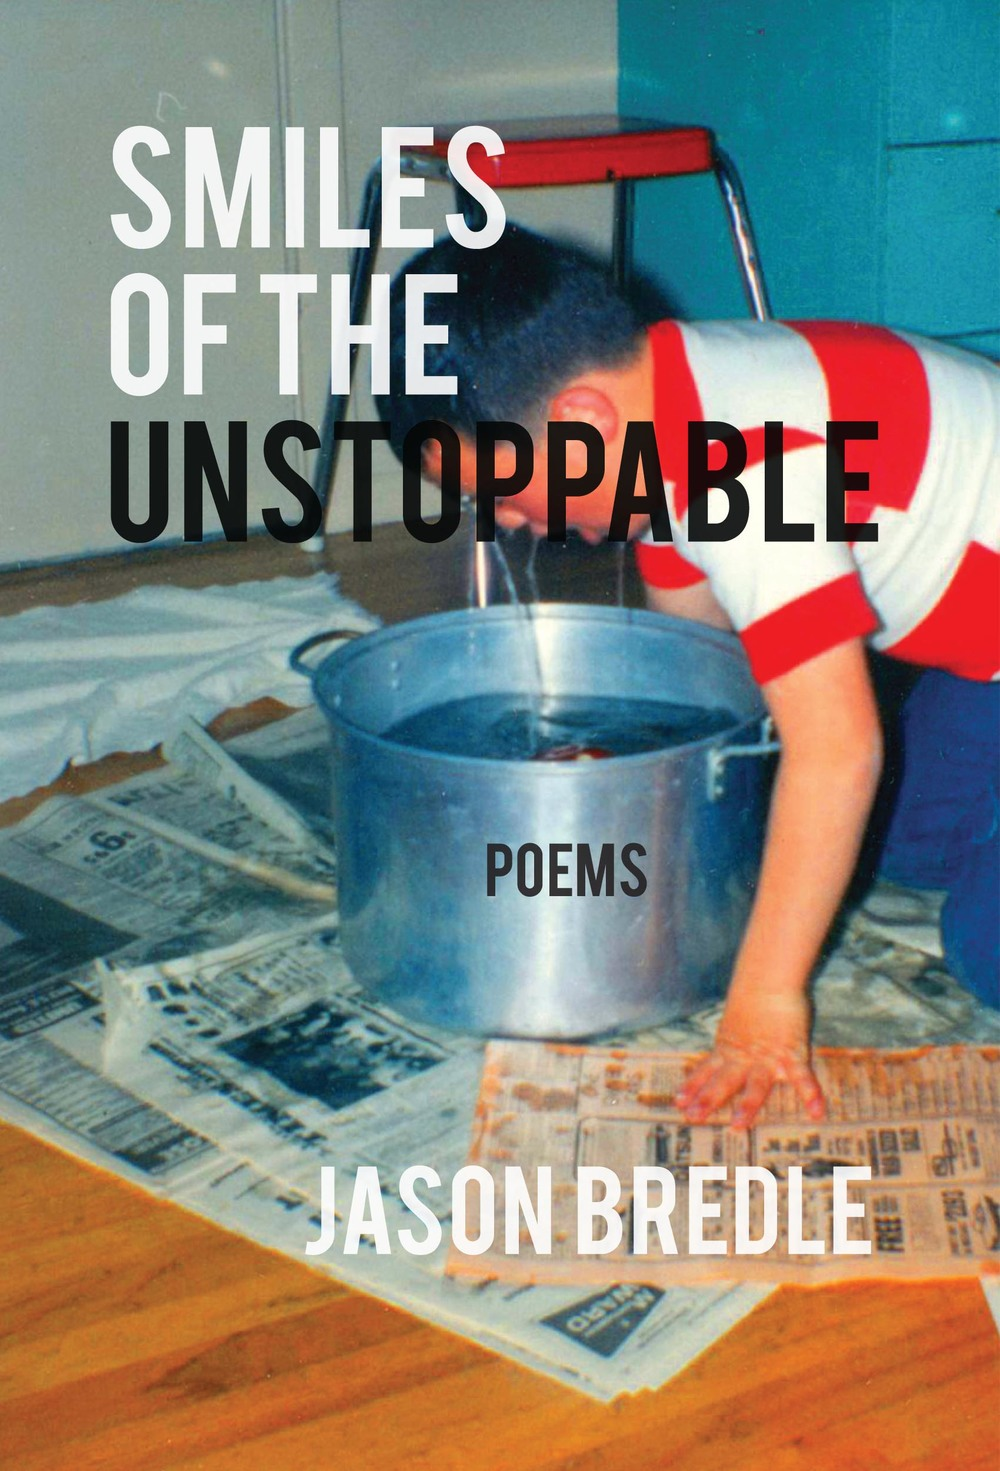 Smiles of the Unstoppable—Cover.jpg